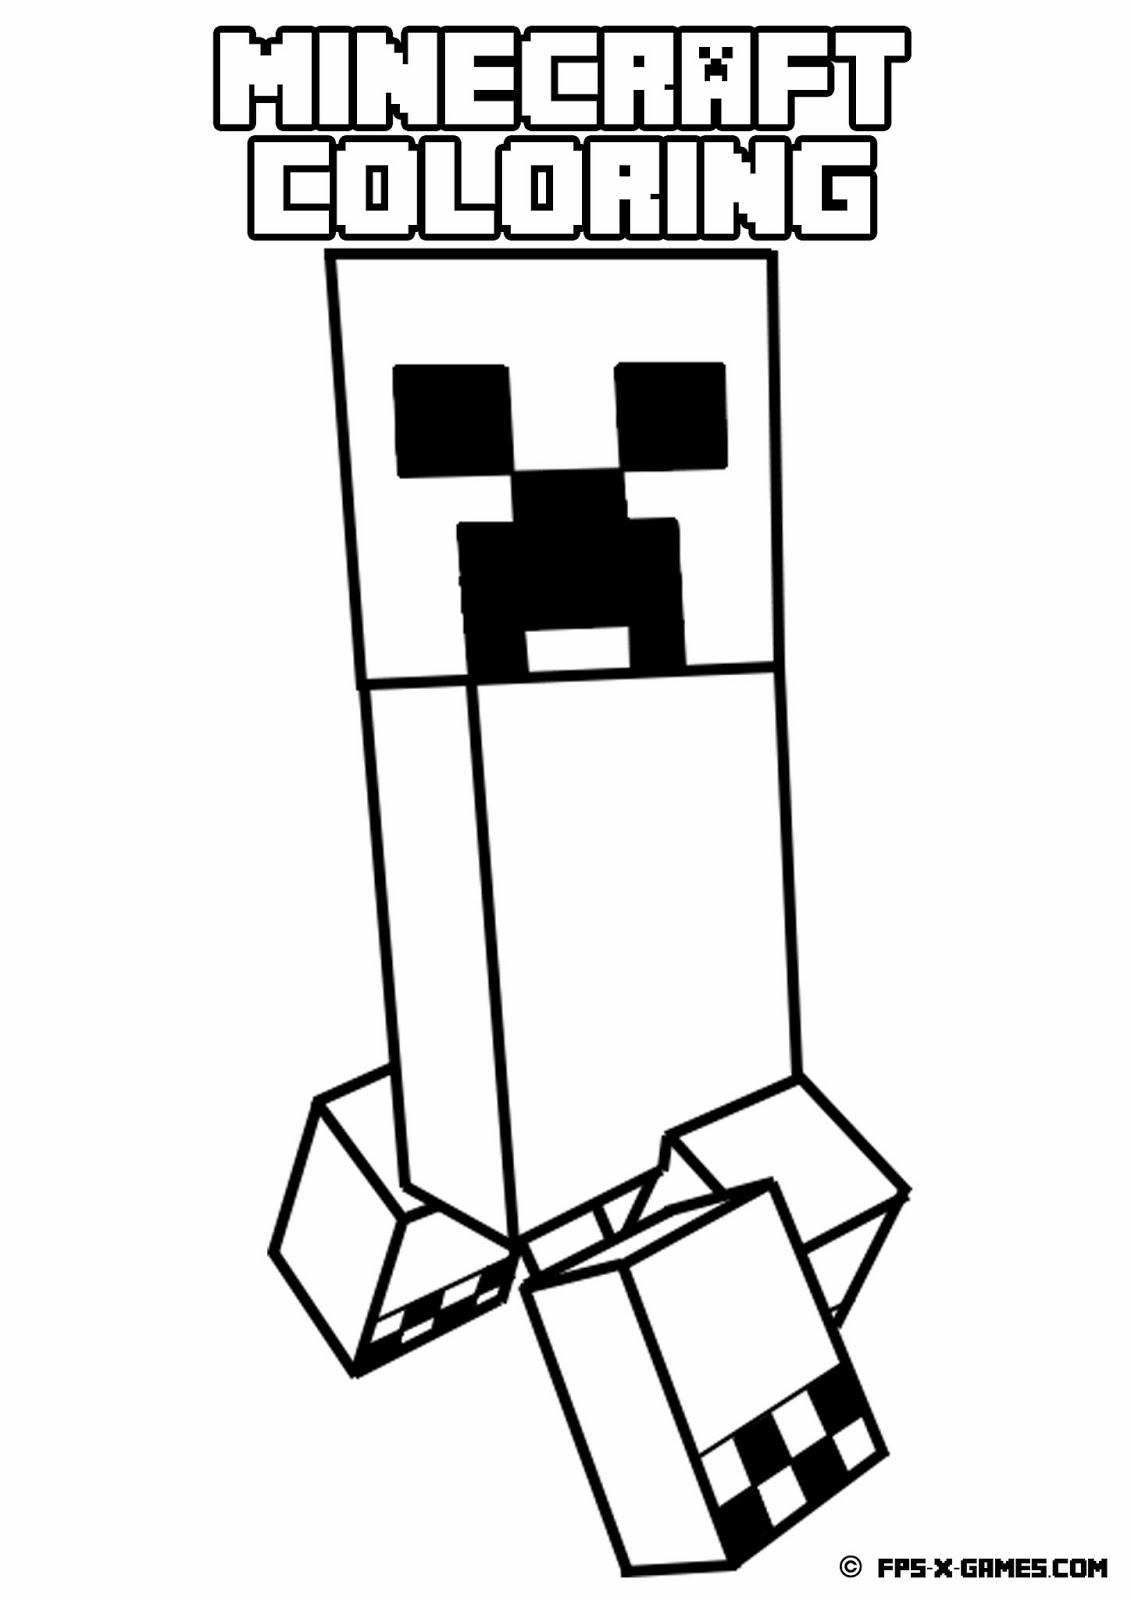 minecraft creeper coloring page - minecraftcoloringpages images minecraft ghast thumb png